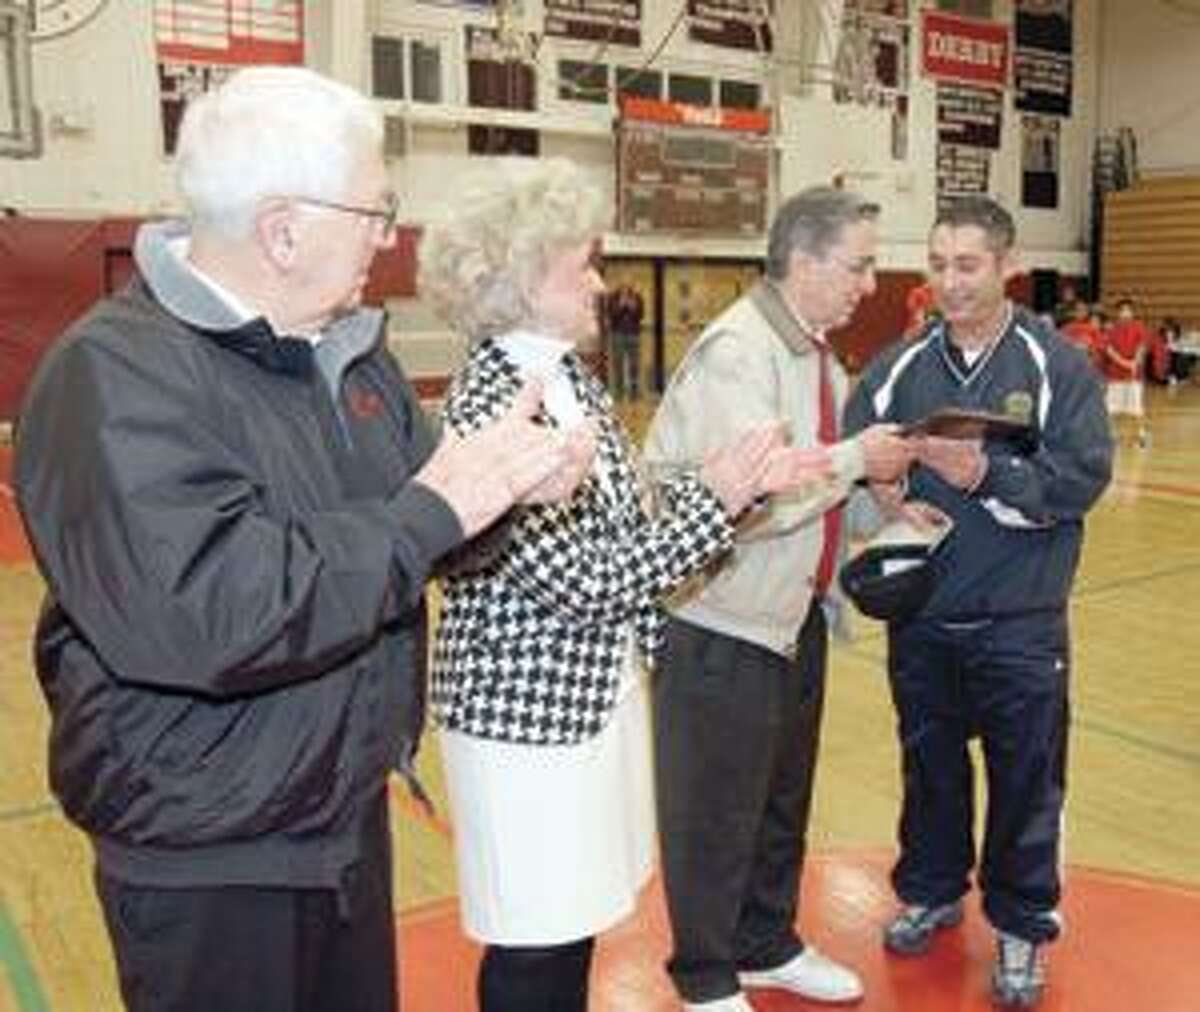 SONJA ZINKE/Register CitizenTorrington Police Officer Tony Pietrafesa, right awards Andy Pace with a plaque of appreciation from PAL/Elks Basketball League Saturday at the Torrington High School. Left Lou Zanderiago also received a plaque. Doris Richards, center was on hand to accept the honor for her brother Frankie Russo. Joseph Killany was also honored but was not able to attend. Purchase a glossy print of this photo and more at www.registercitizen.com